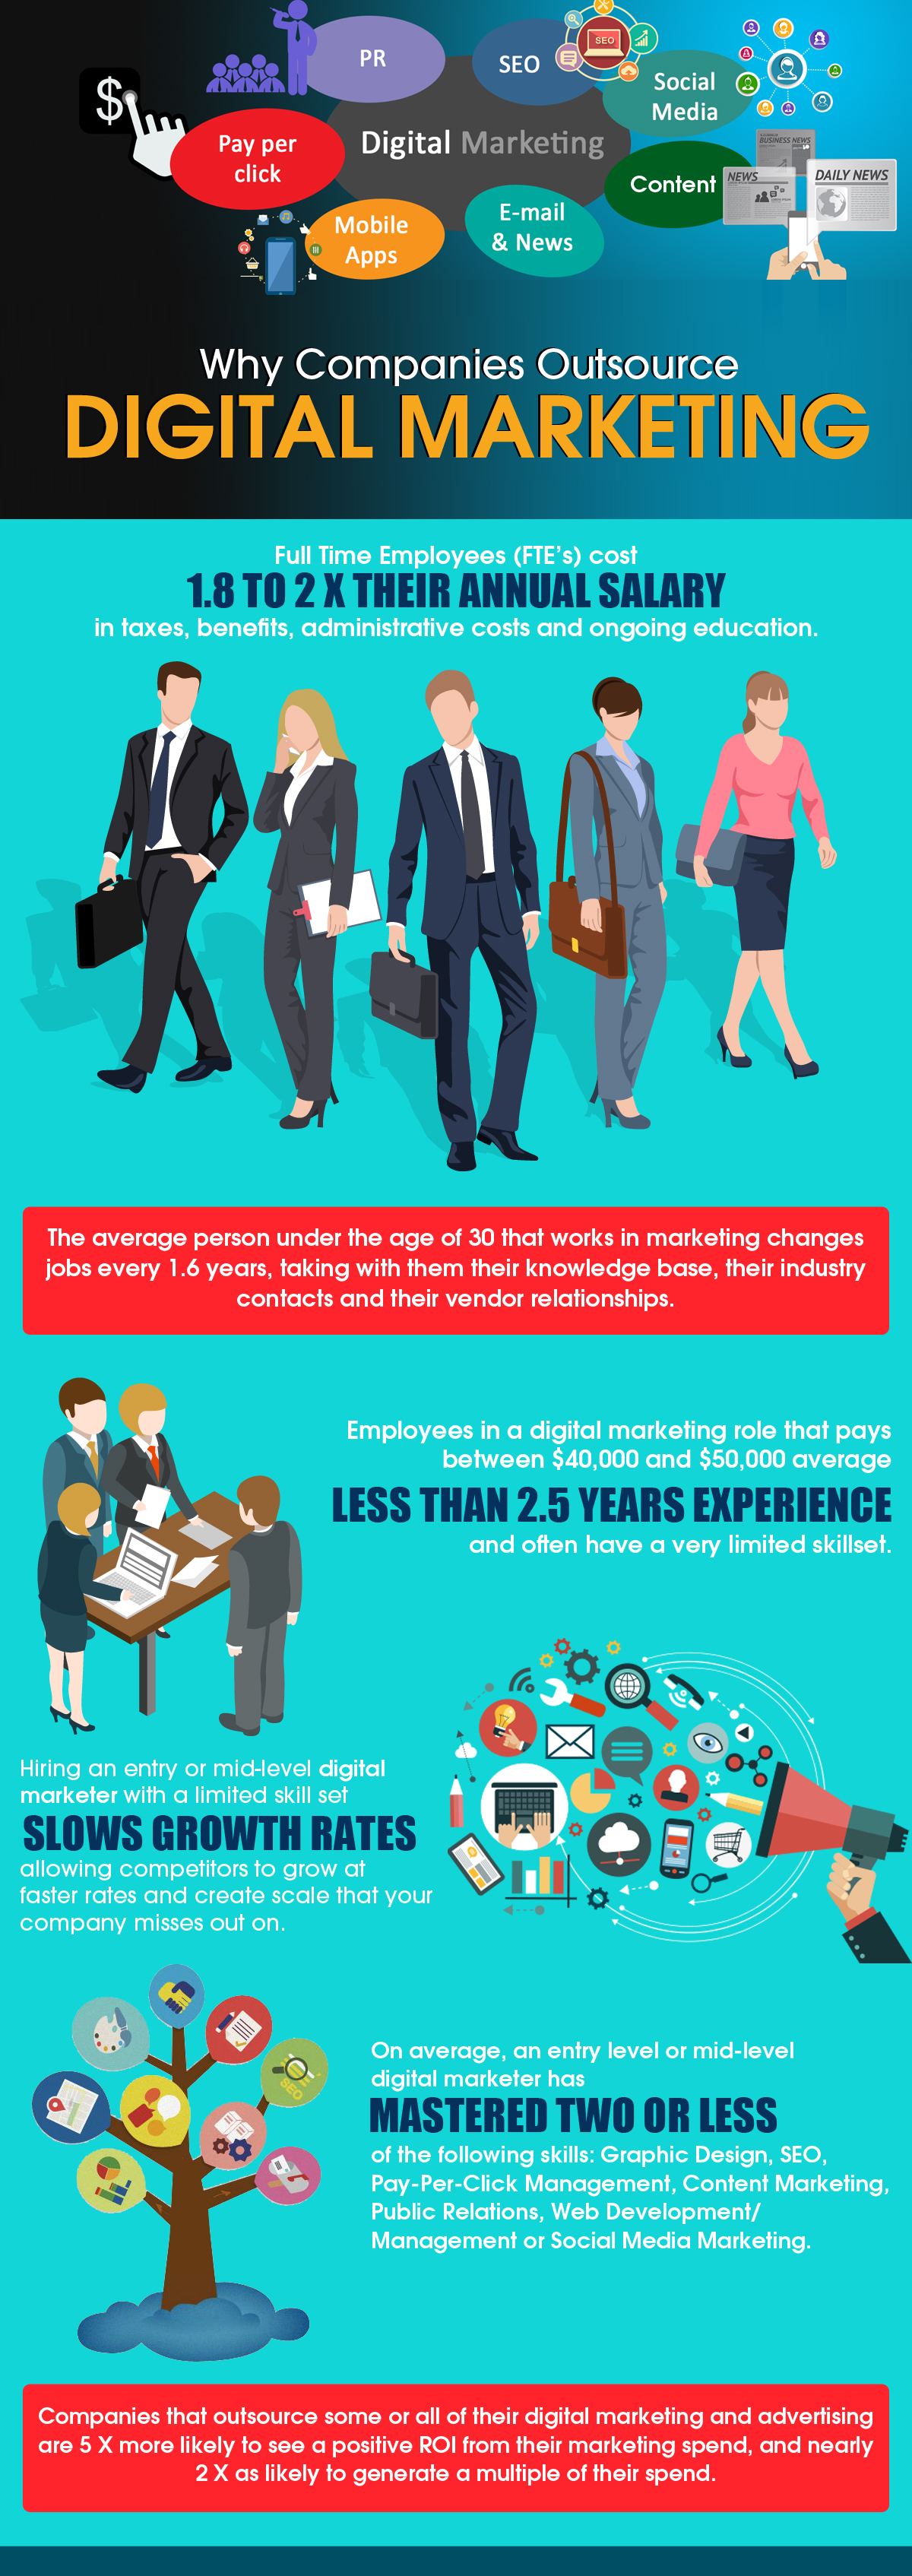 Why outsource digital marketing? This infographic answers the question by showing stats detailing the high cost of employee salaries, how frequently digital employees change jobs, how little education entry level digital employees have and how few skills they have mastered. It also shows that companies who outsource digital advertising and marketing normally get a very high return on their spend.